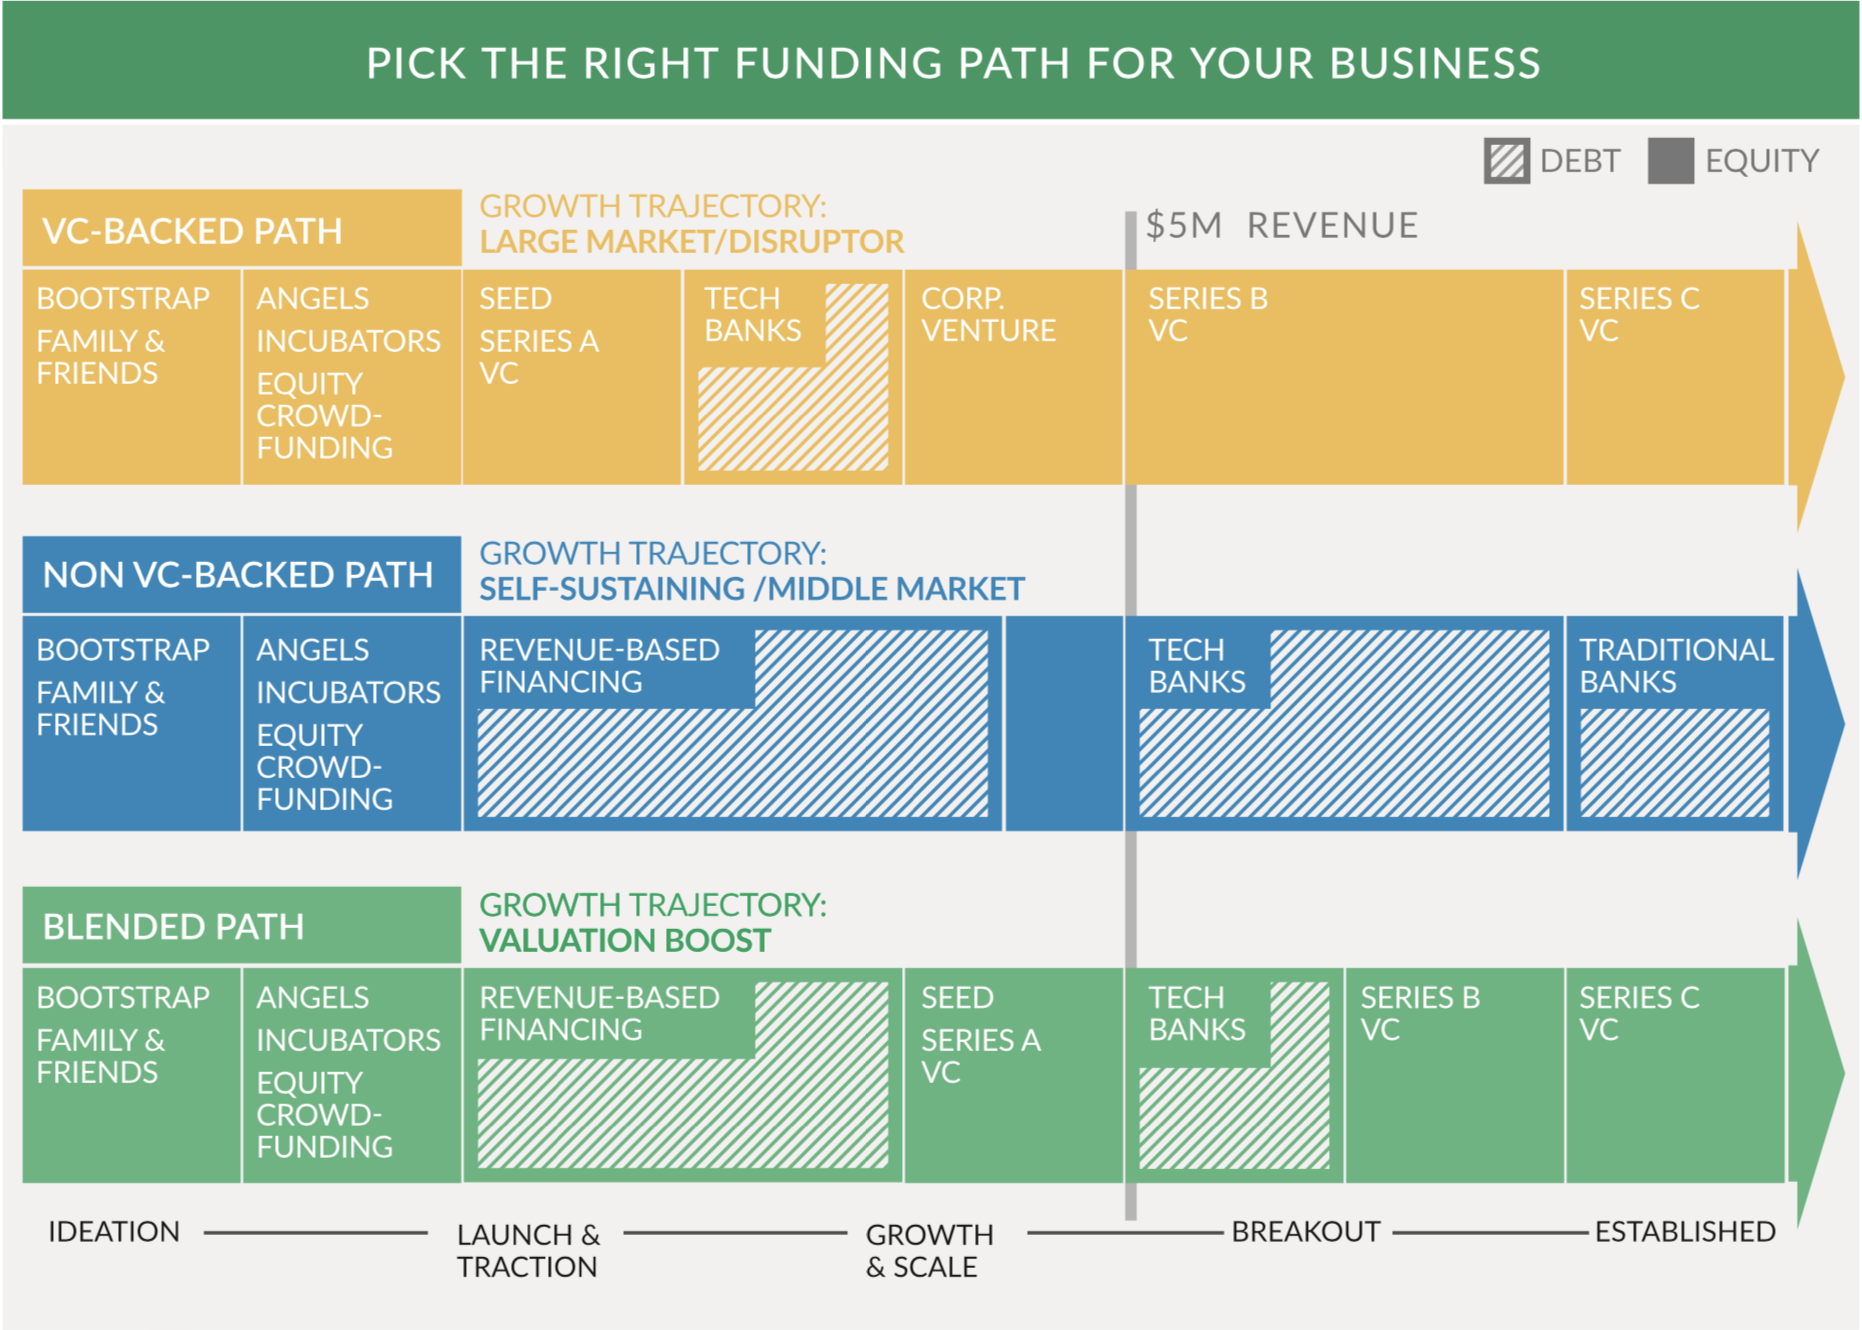 Pick the right funding path for your business